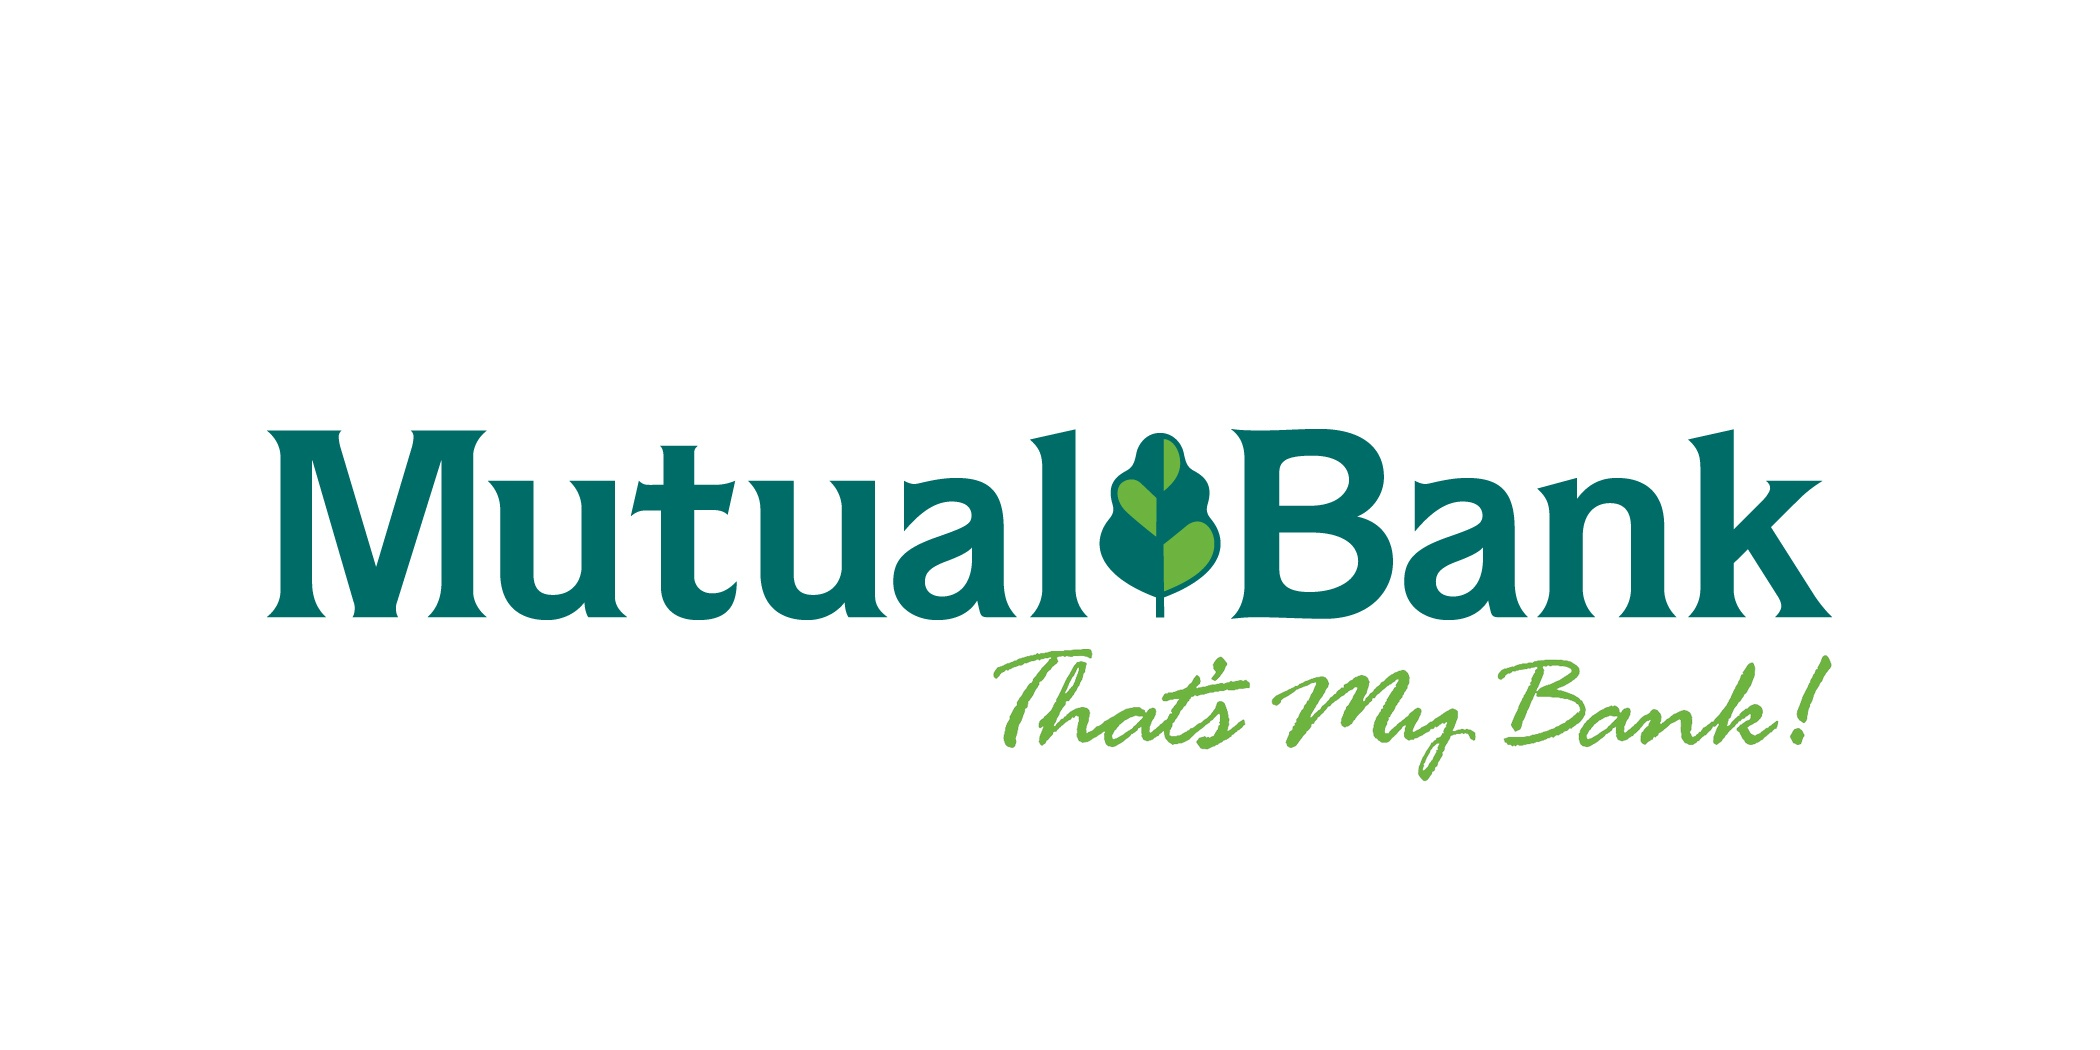 Mutual_Bank_Green-1.jpg